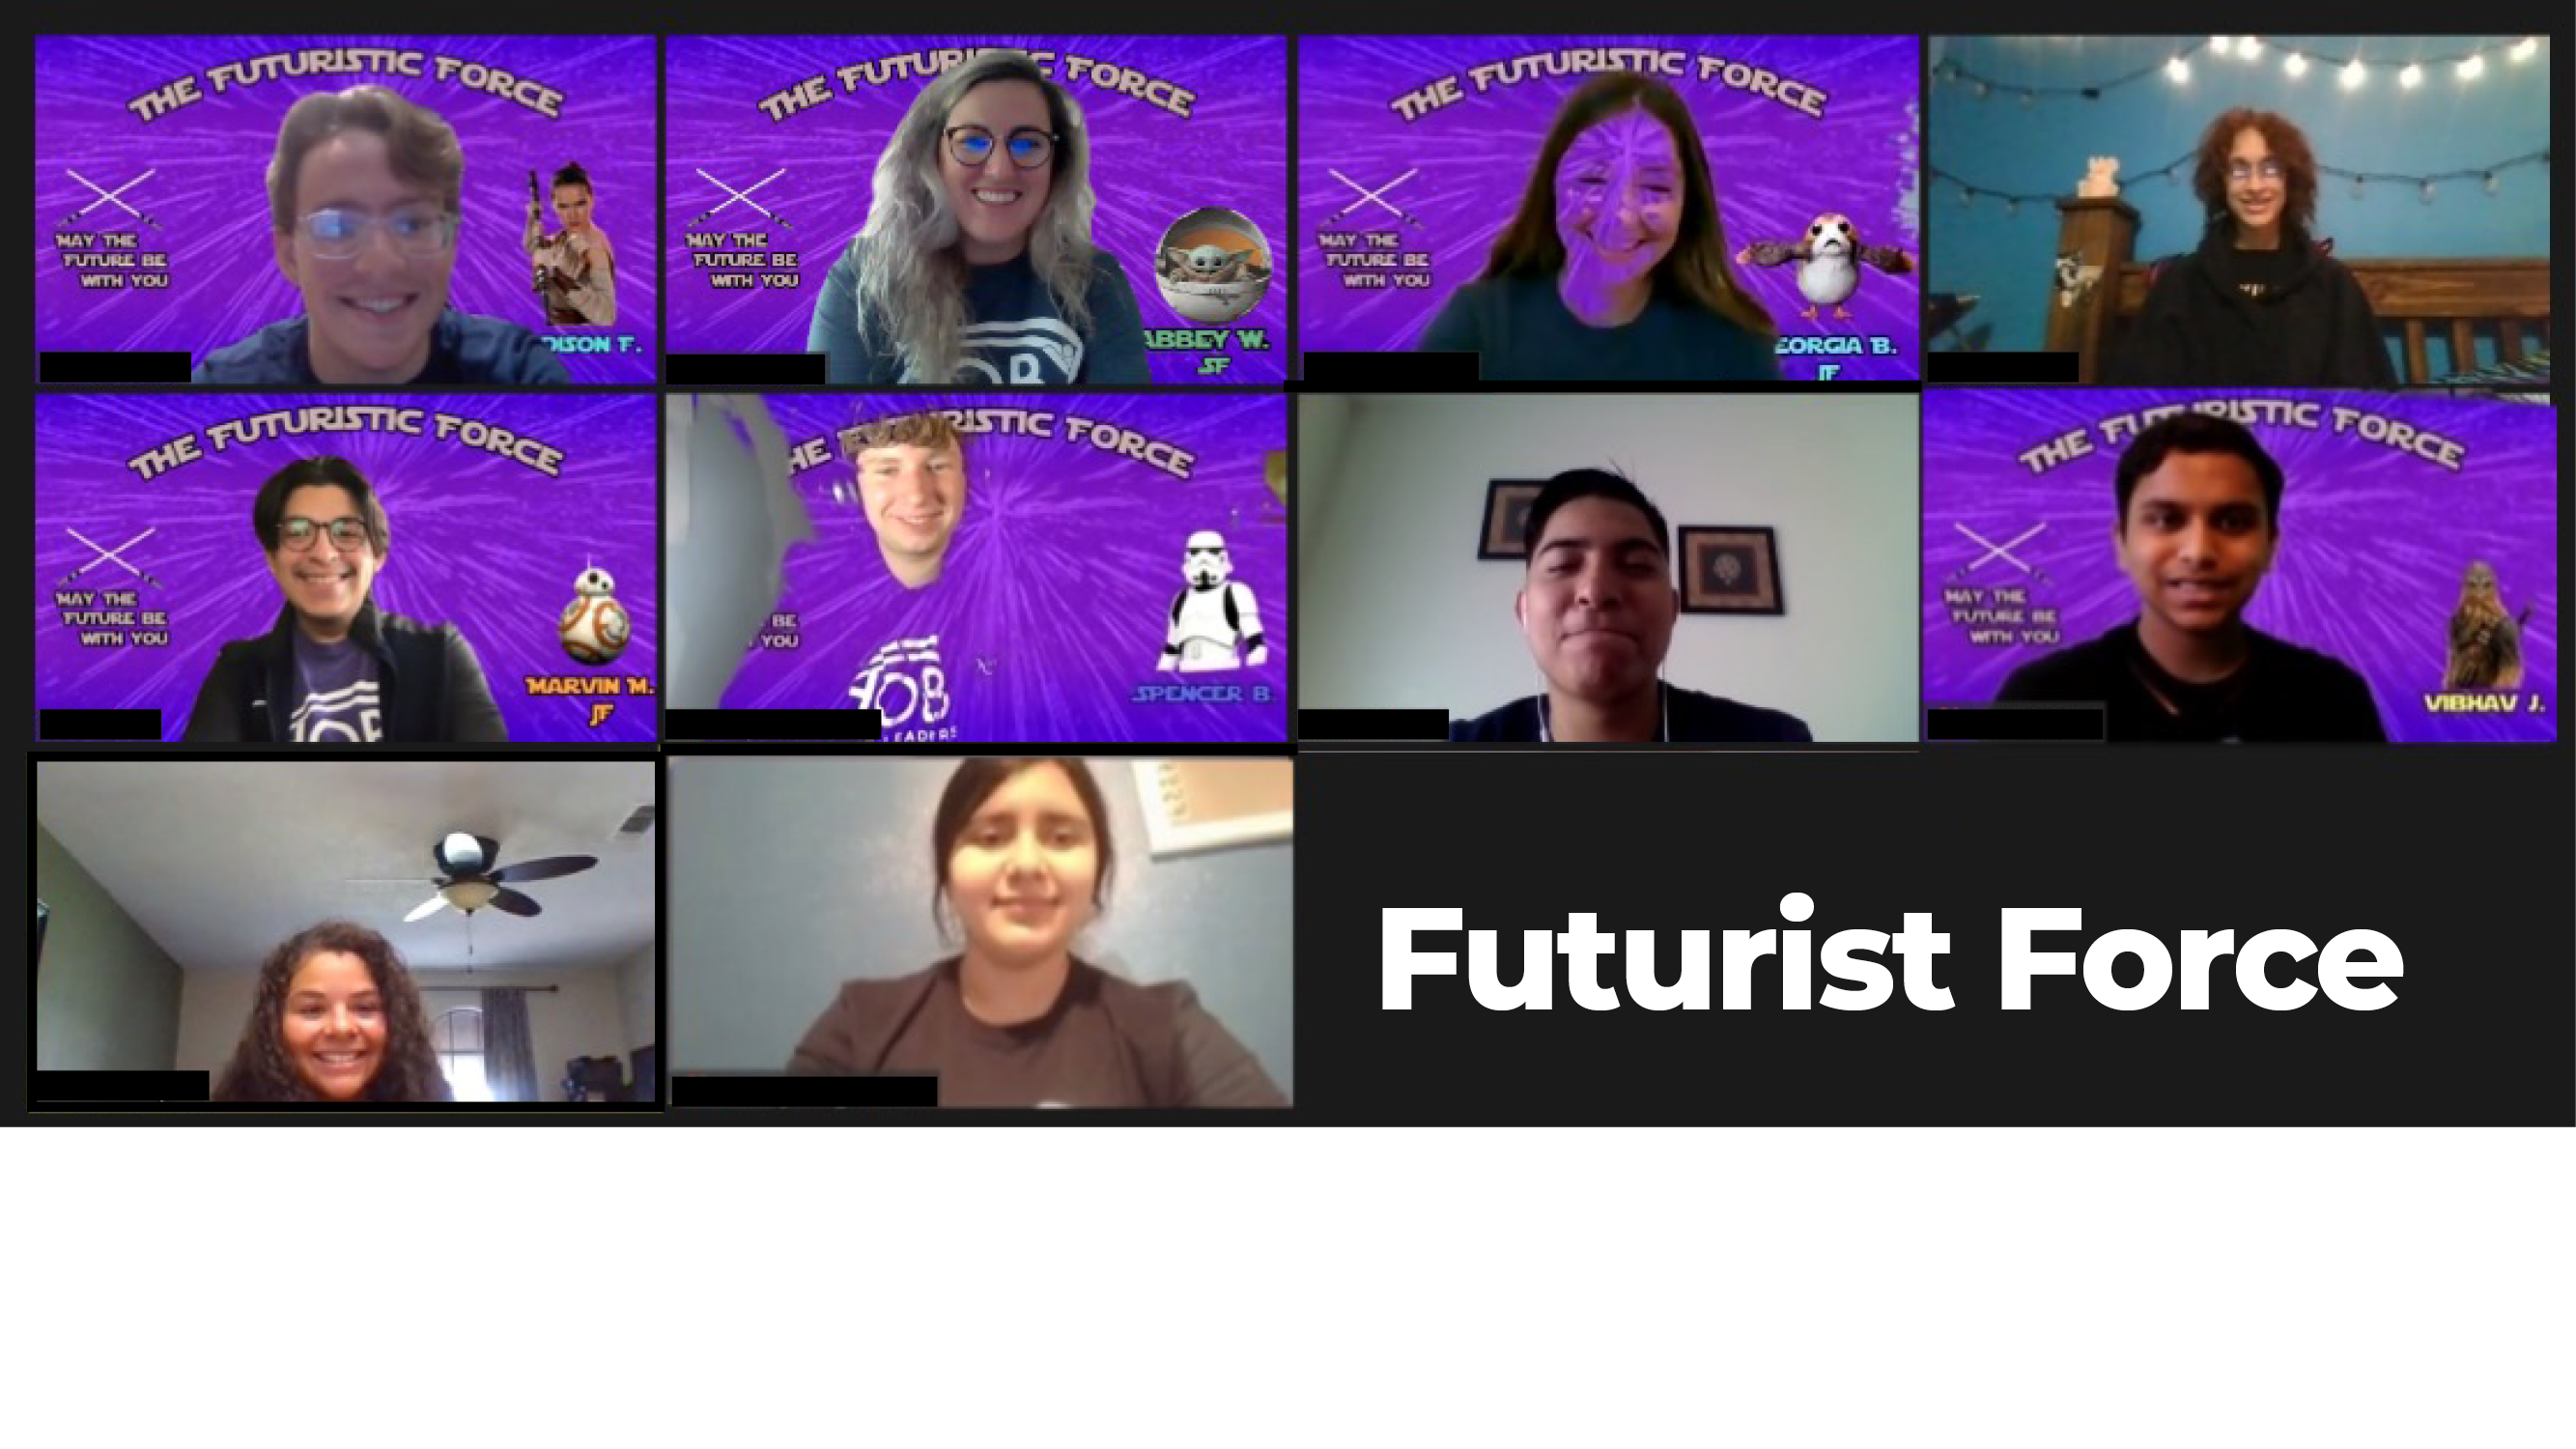 Futurist Force Group